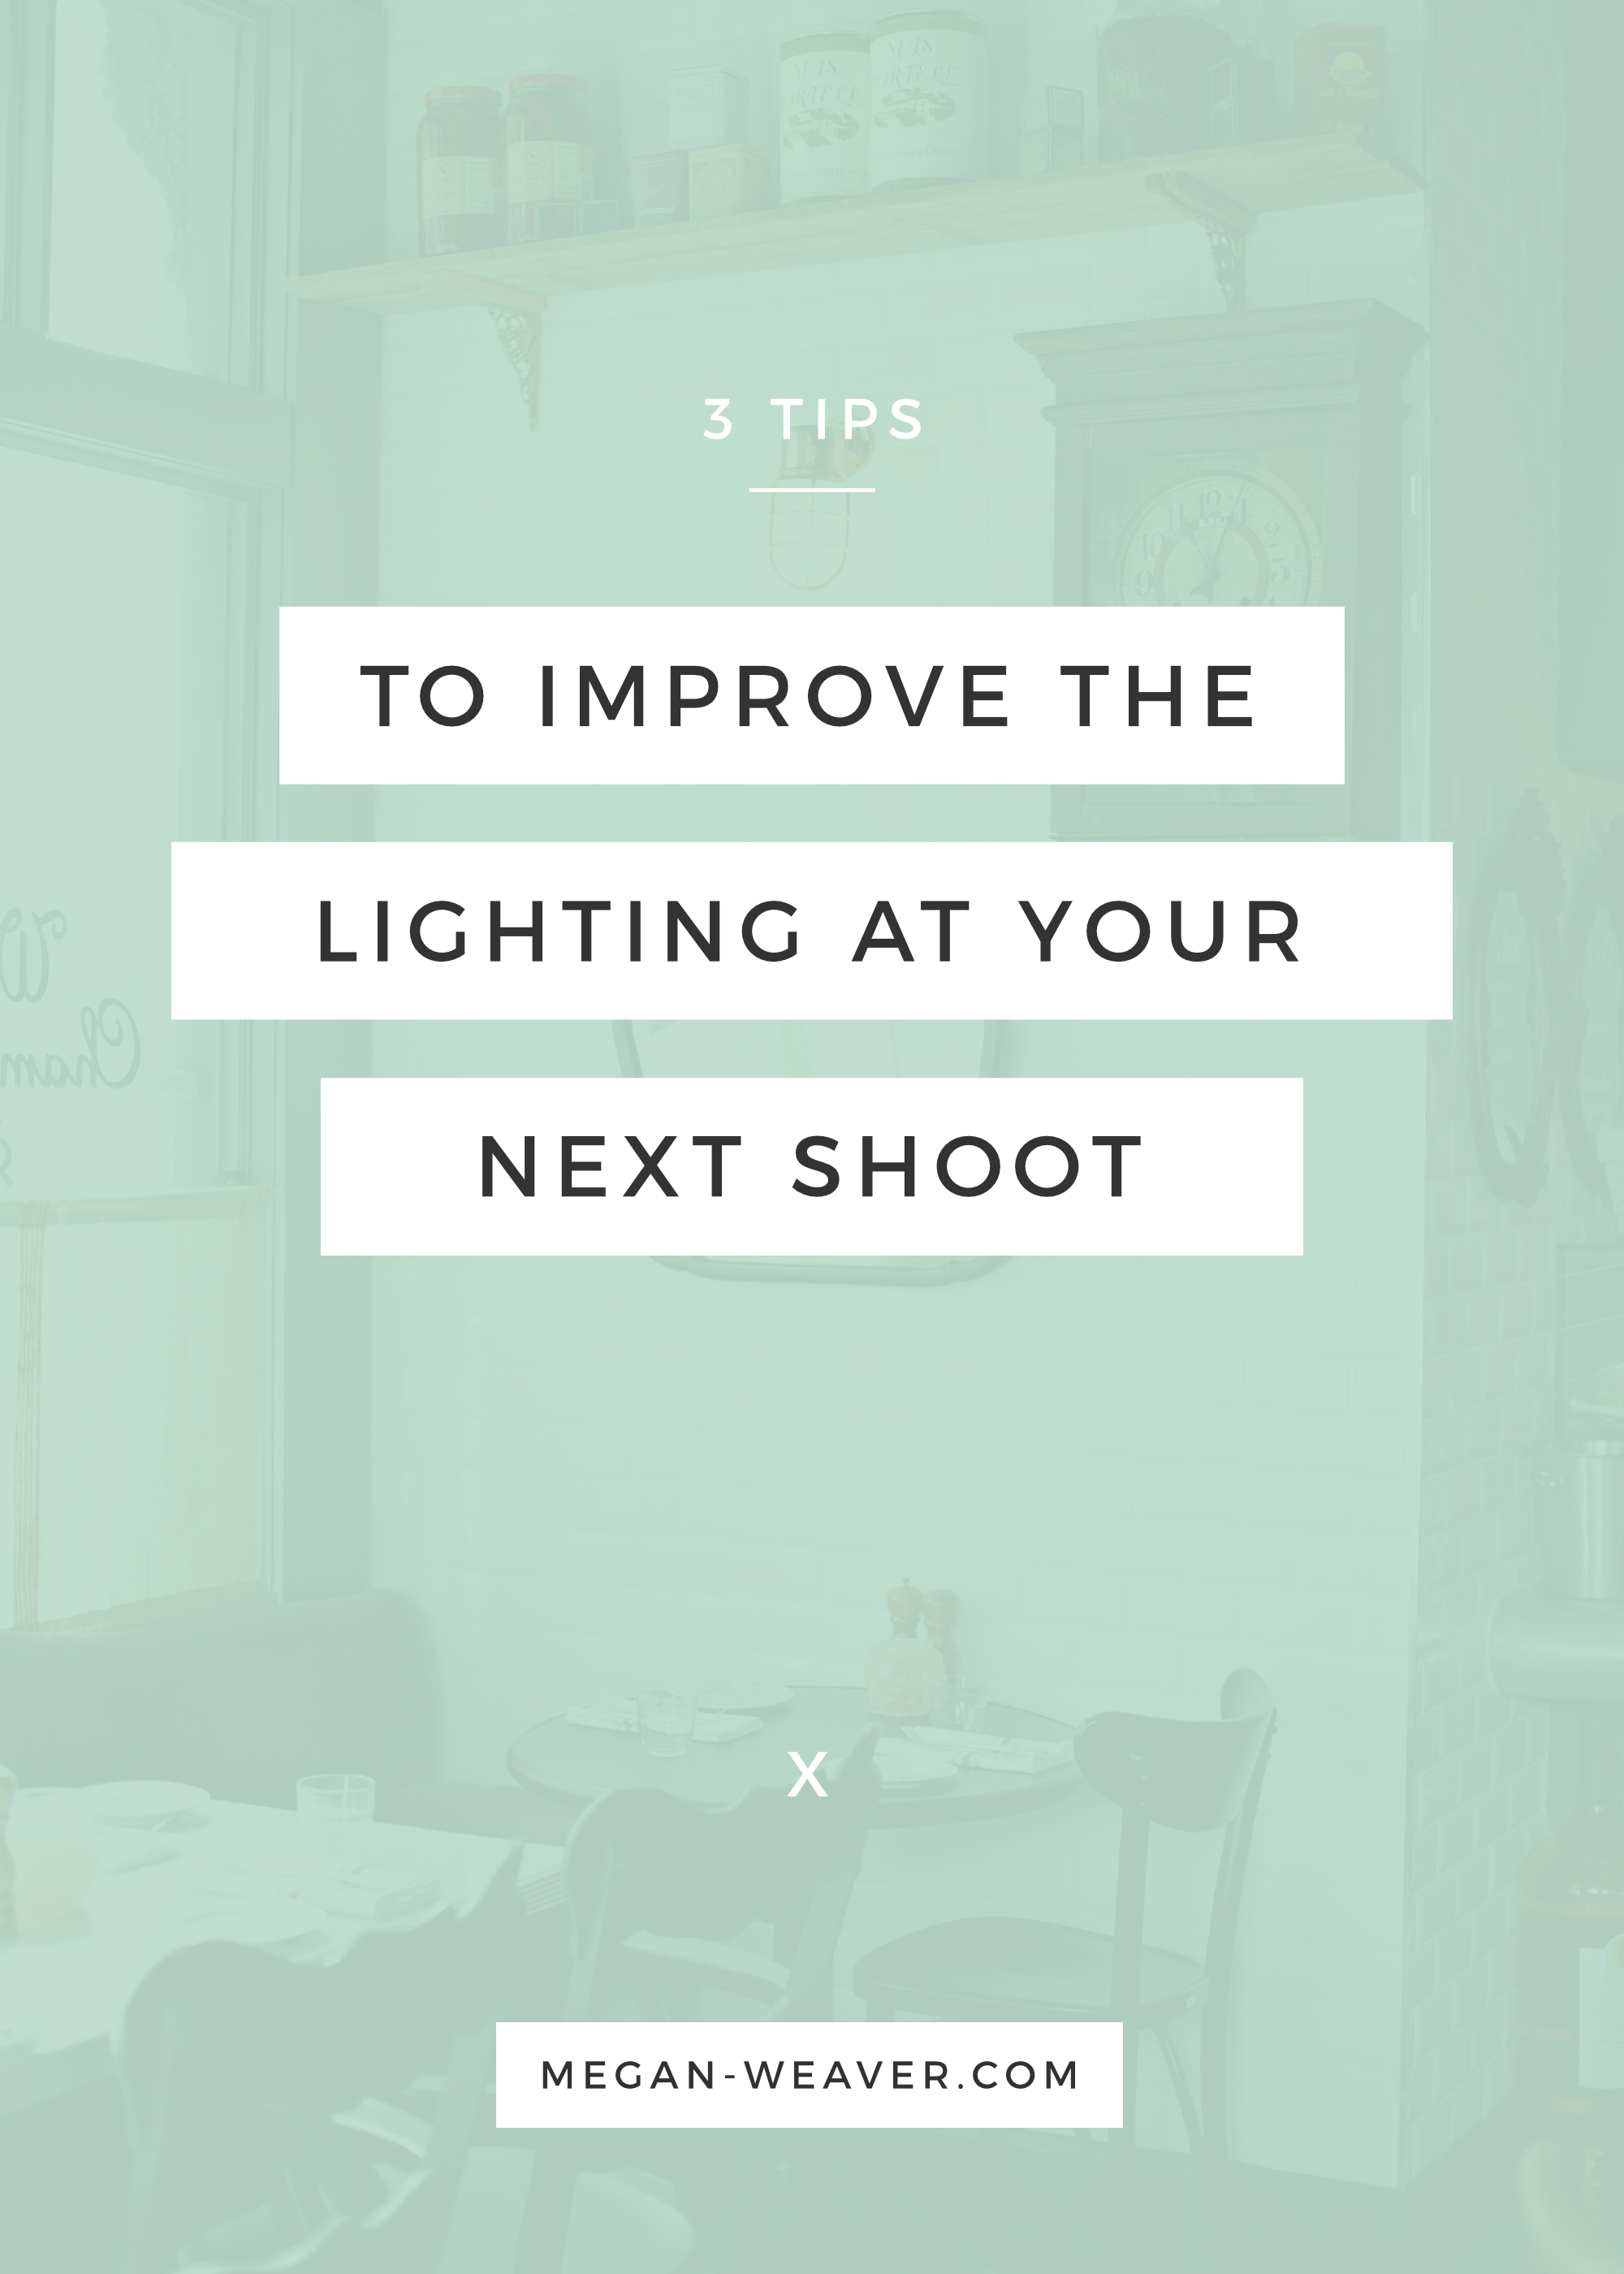 Lighting is hands down the most important component of taking quality photos. Make the best of the lighting in any location with these three tips!